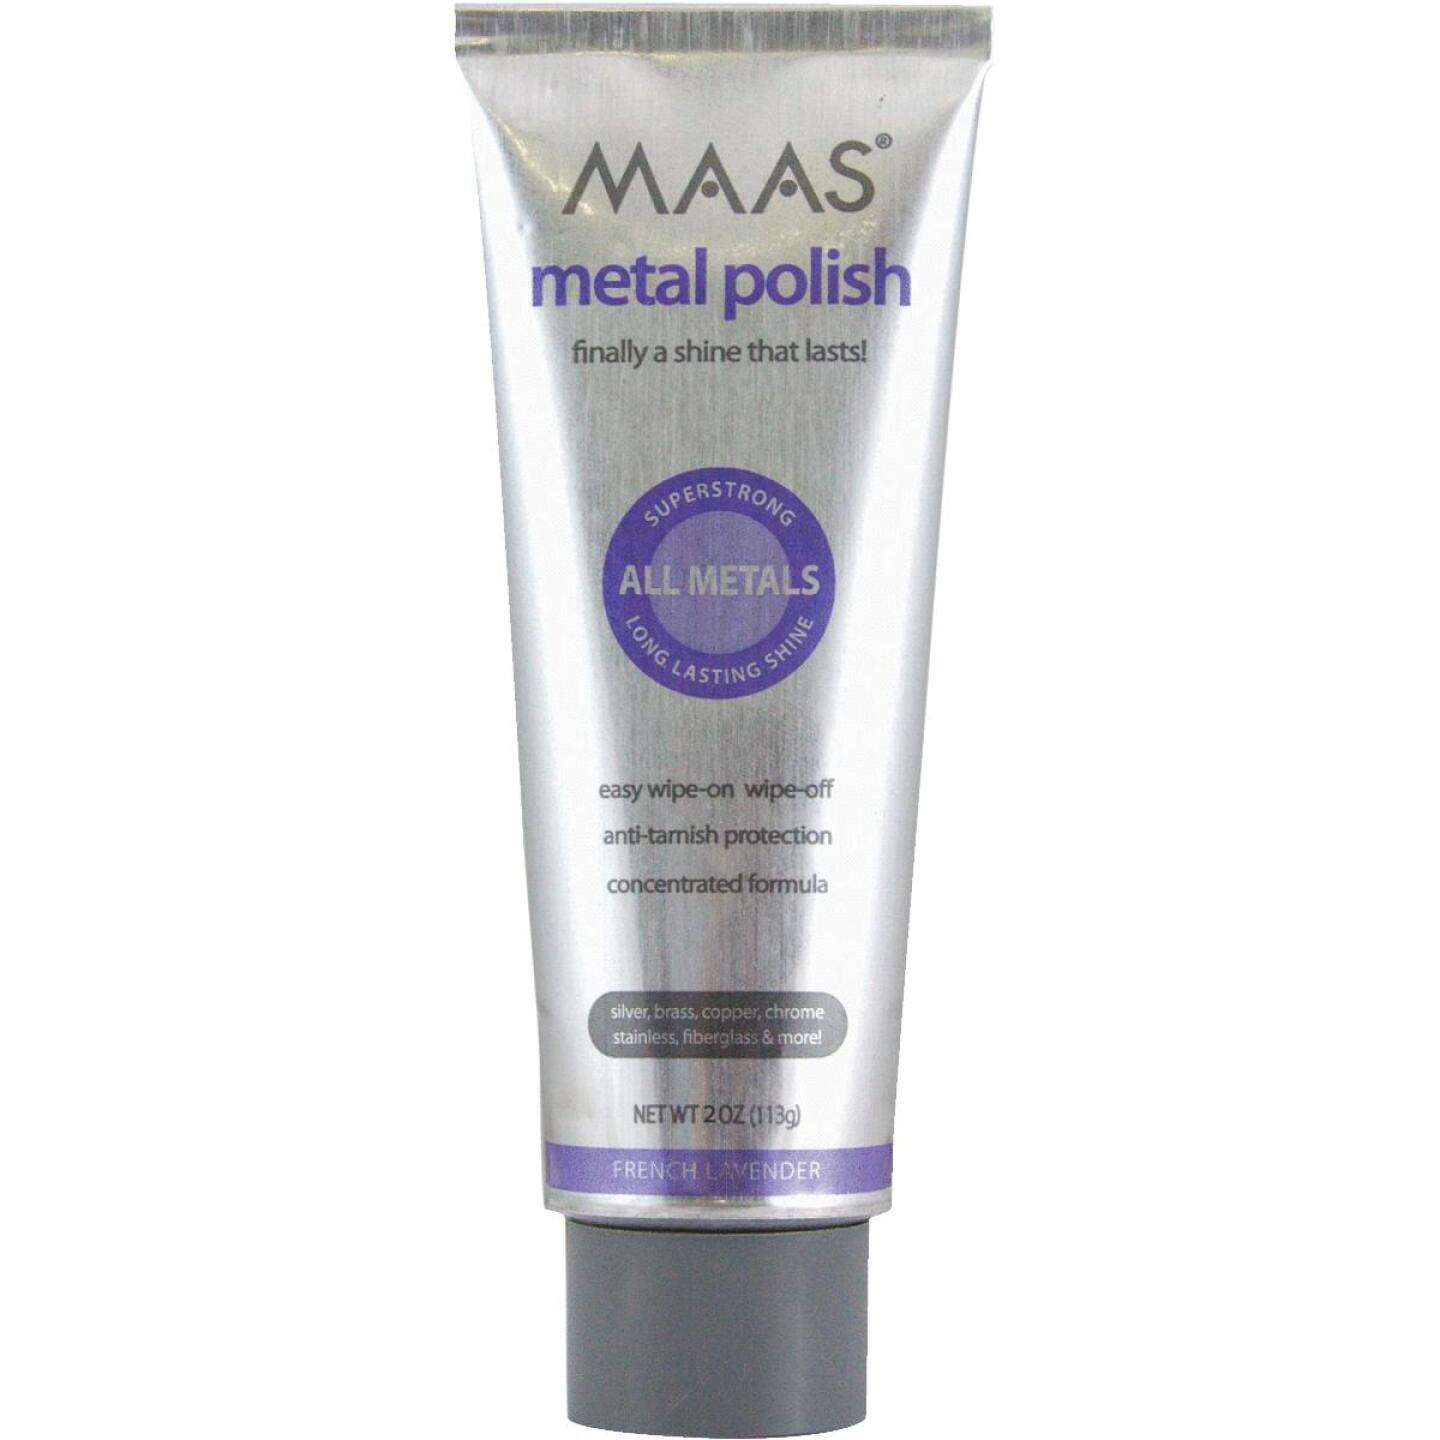 Maas 2 Oz. Polishing Creme For All Metals Image 1